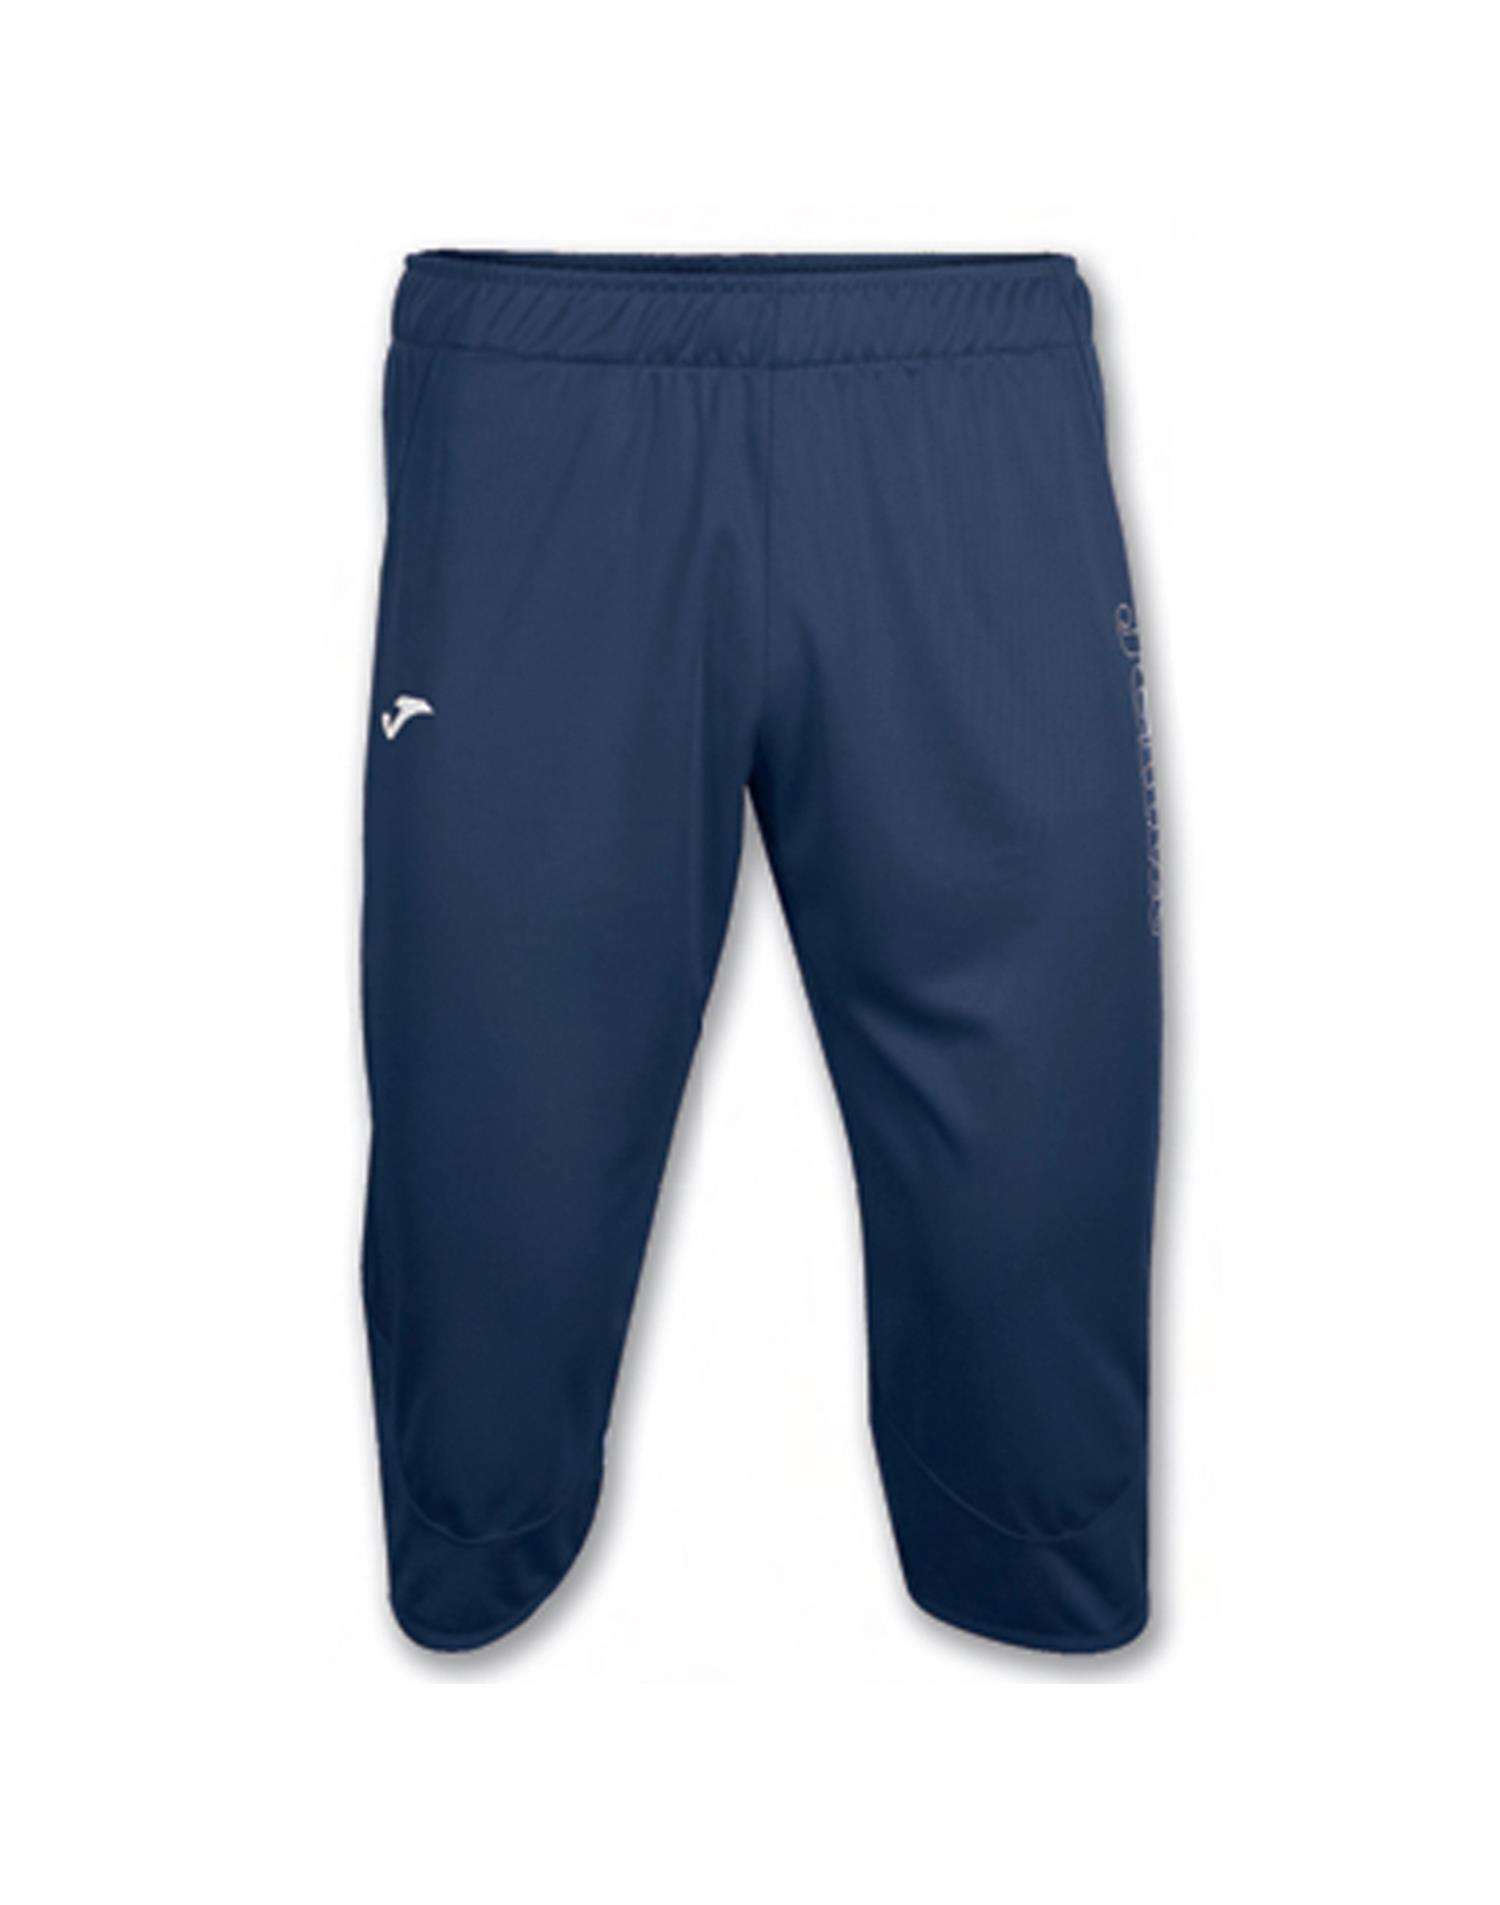 JOMA Pantalone Pirata Interlok 3/4 (6XS - BLU NAVY)